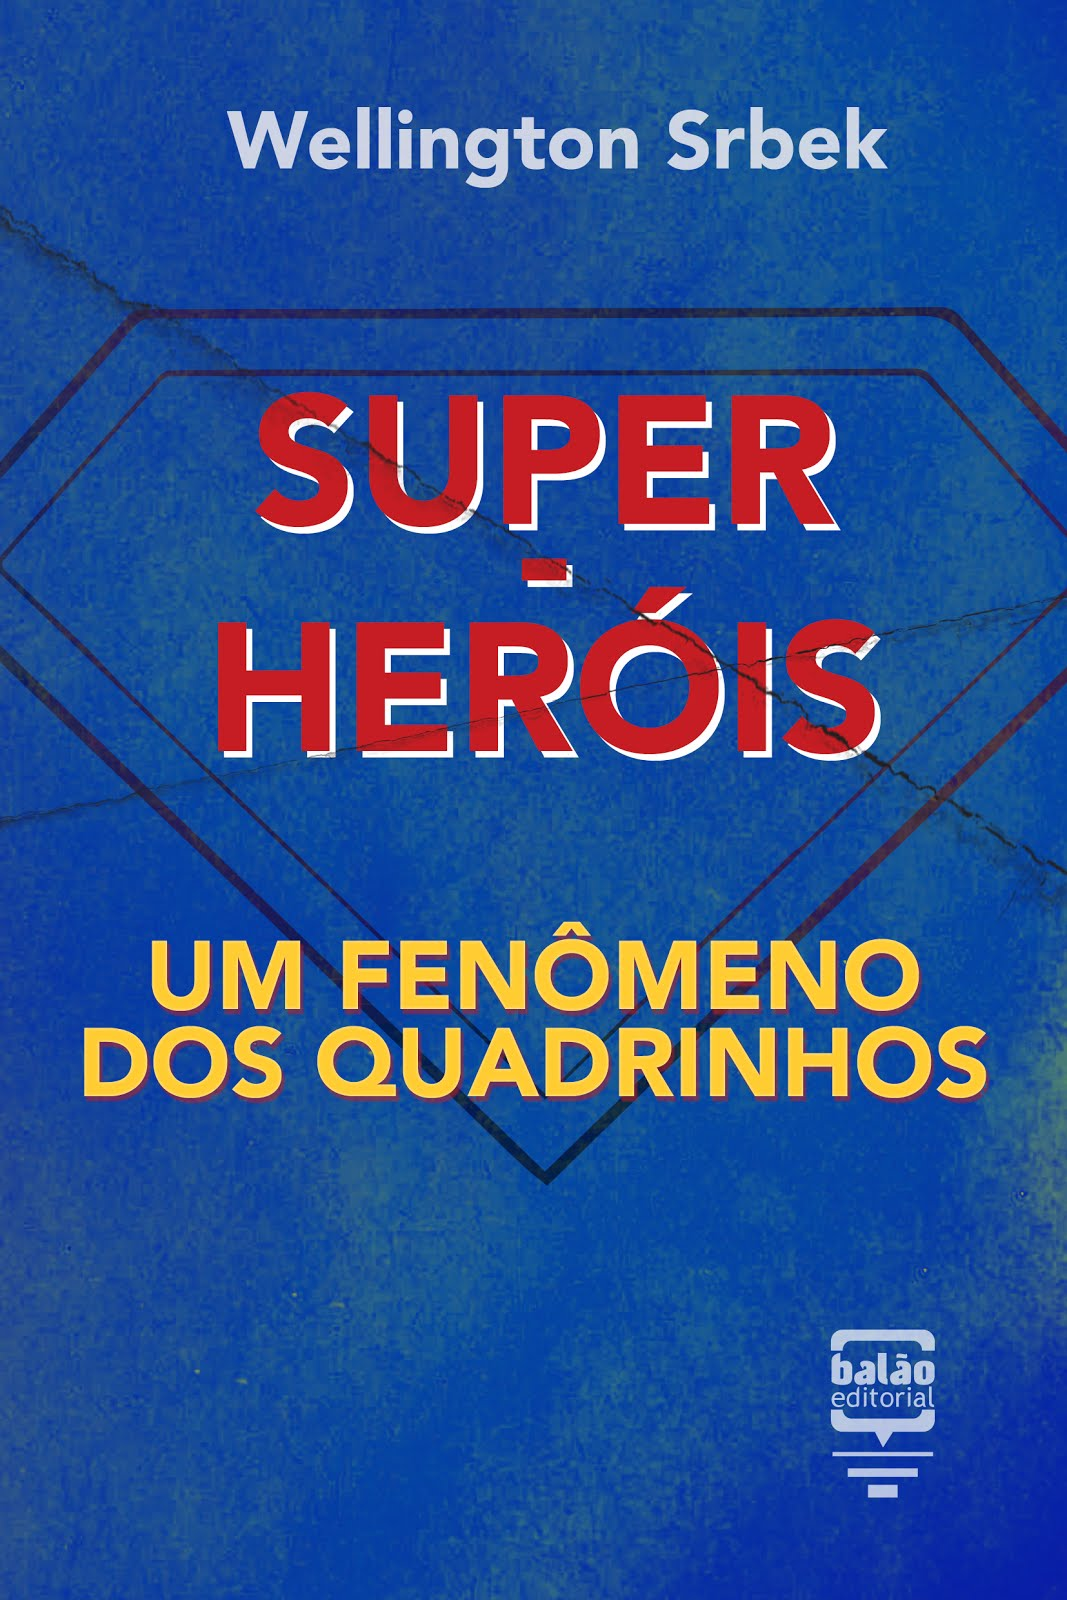 LIVRO SUPER-HERÓIS